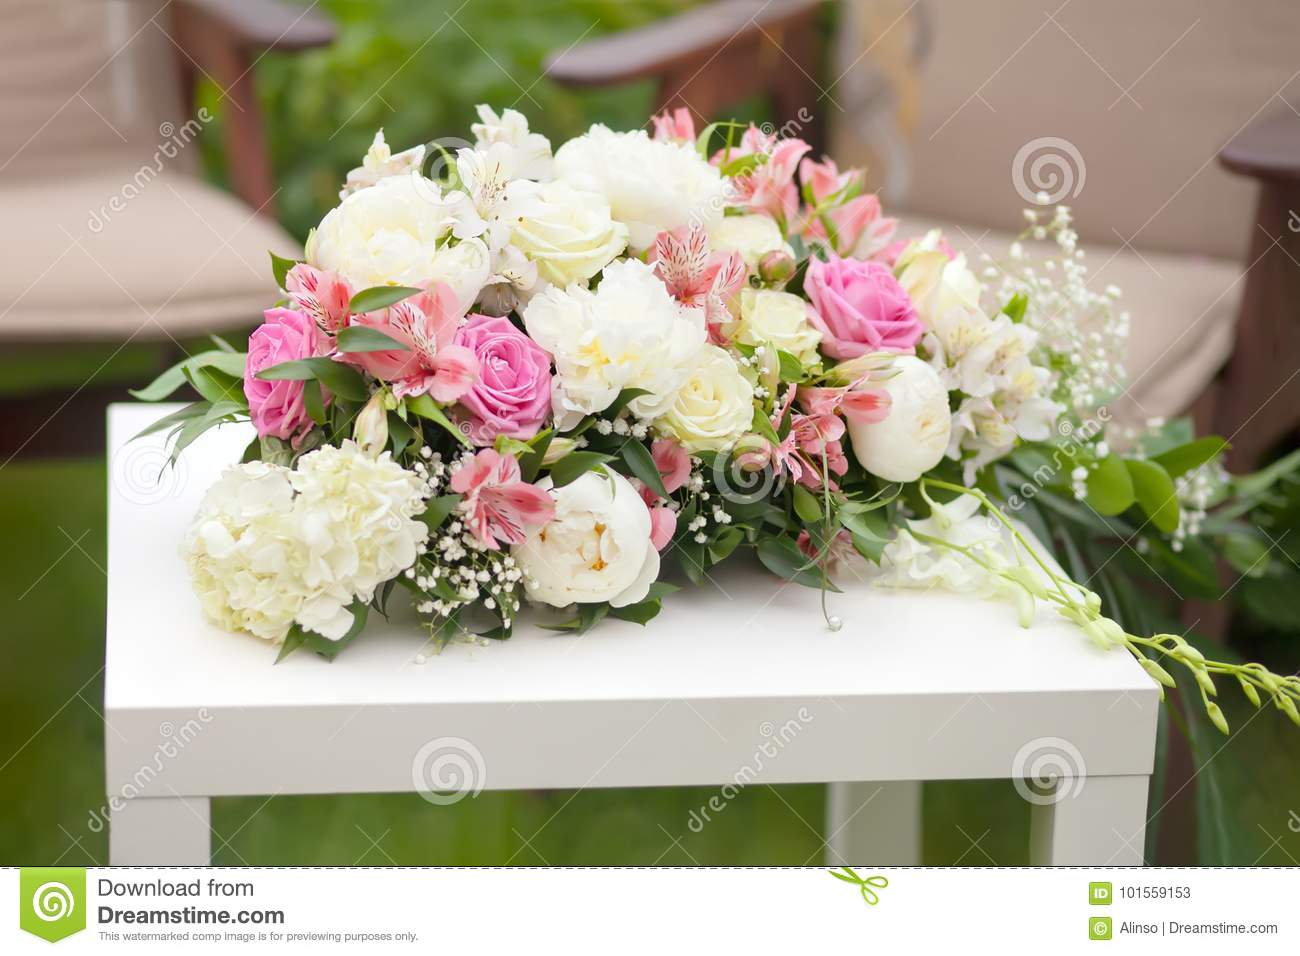 Flower arrangement with pink and white roses wedding day outdoors download flower arrangement with pink and white roses wedding day outdoors stock image mightylinksfo